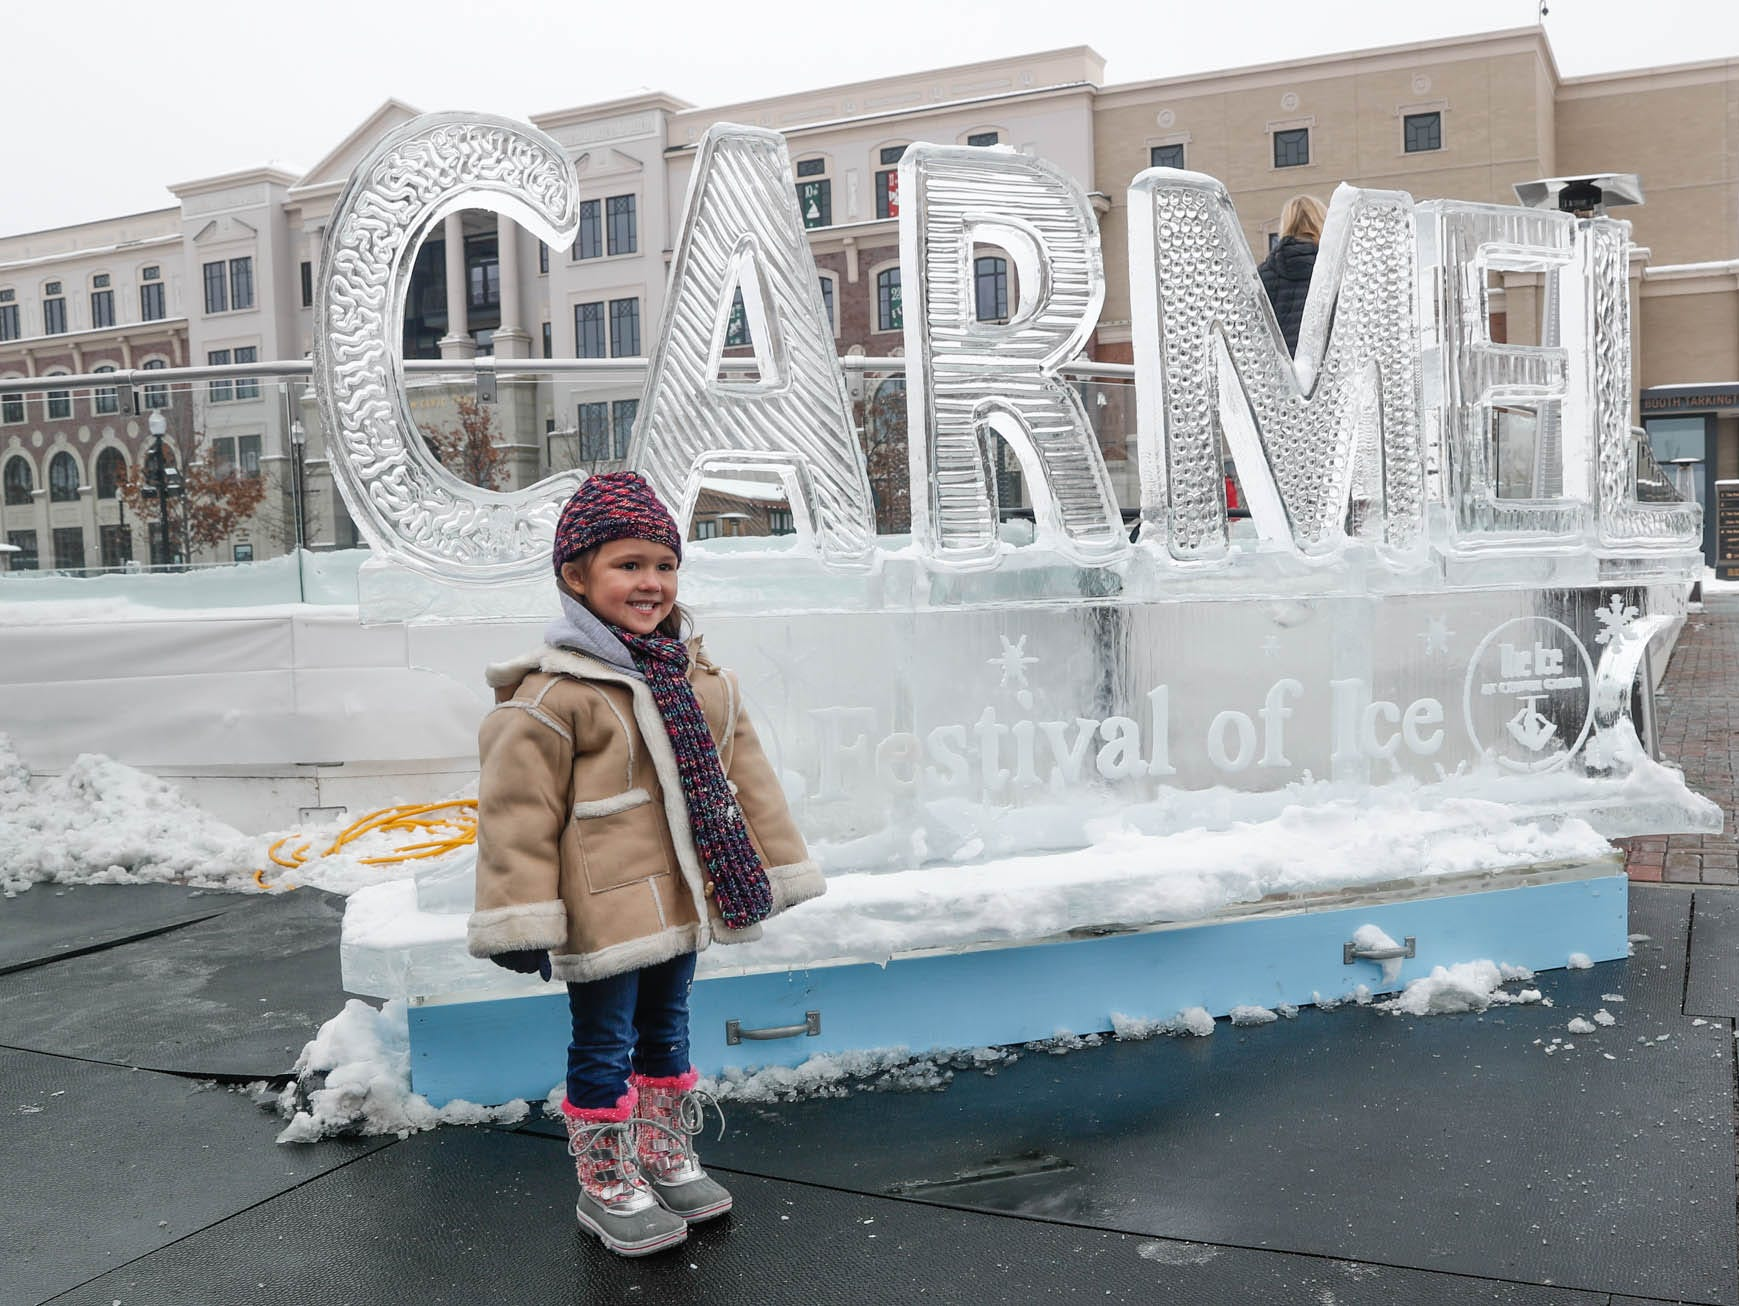 Hattie Jones poses for a photo during the second annual Carmel Festival of Ice, held at Center Green in Carmel Ind. on Sunday, Jan. 13, 2019.